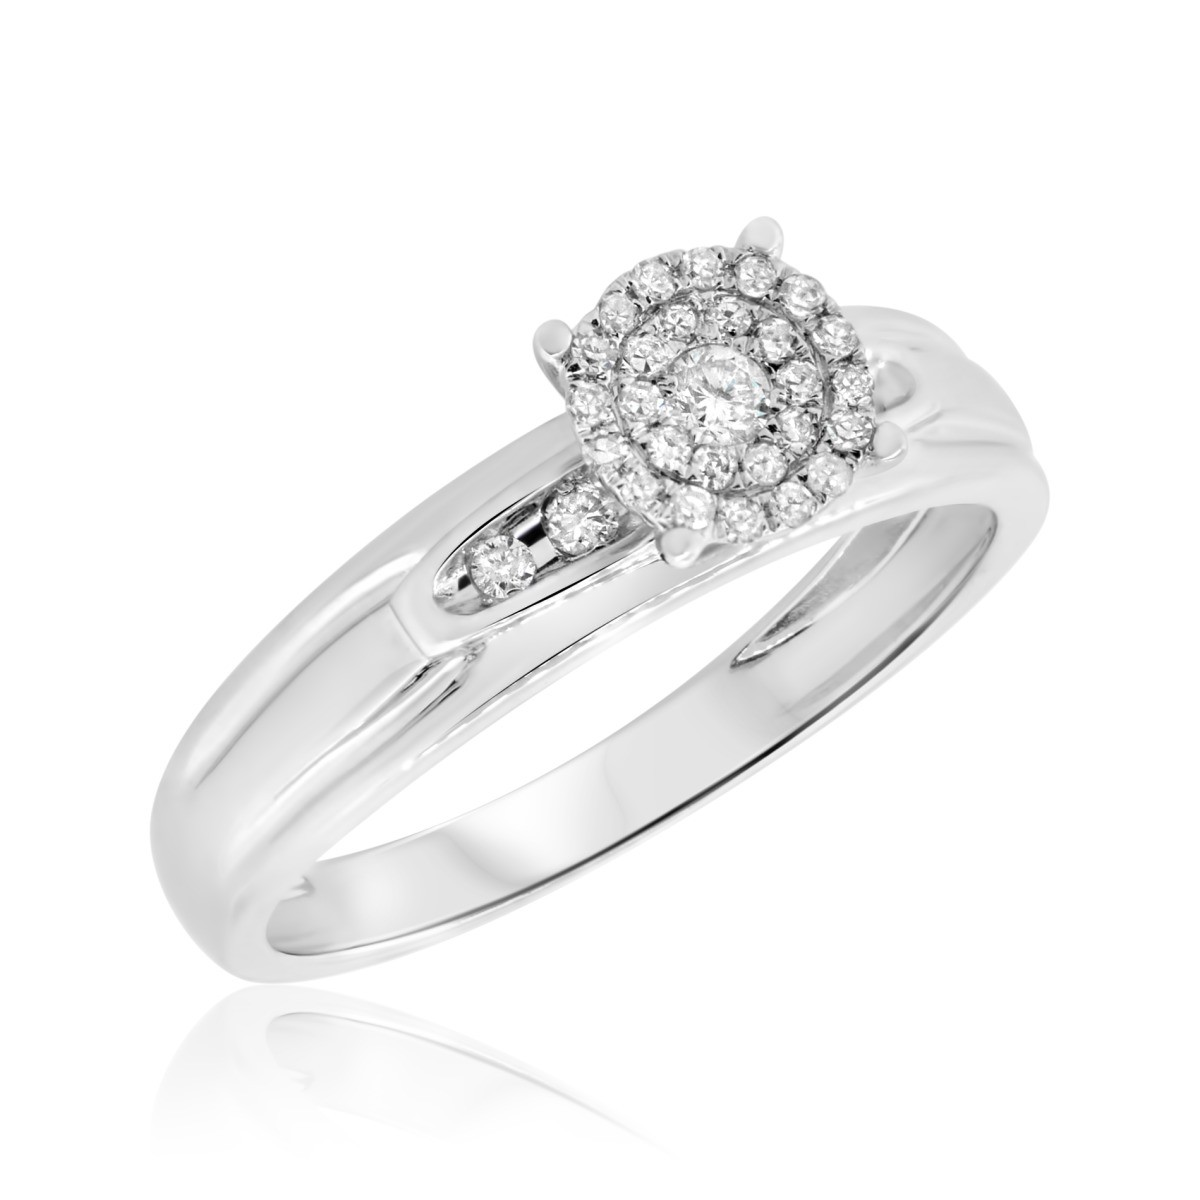 1/5 CT. T.W. Diamond Engagement Ring 14K White Gold